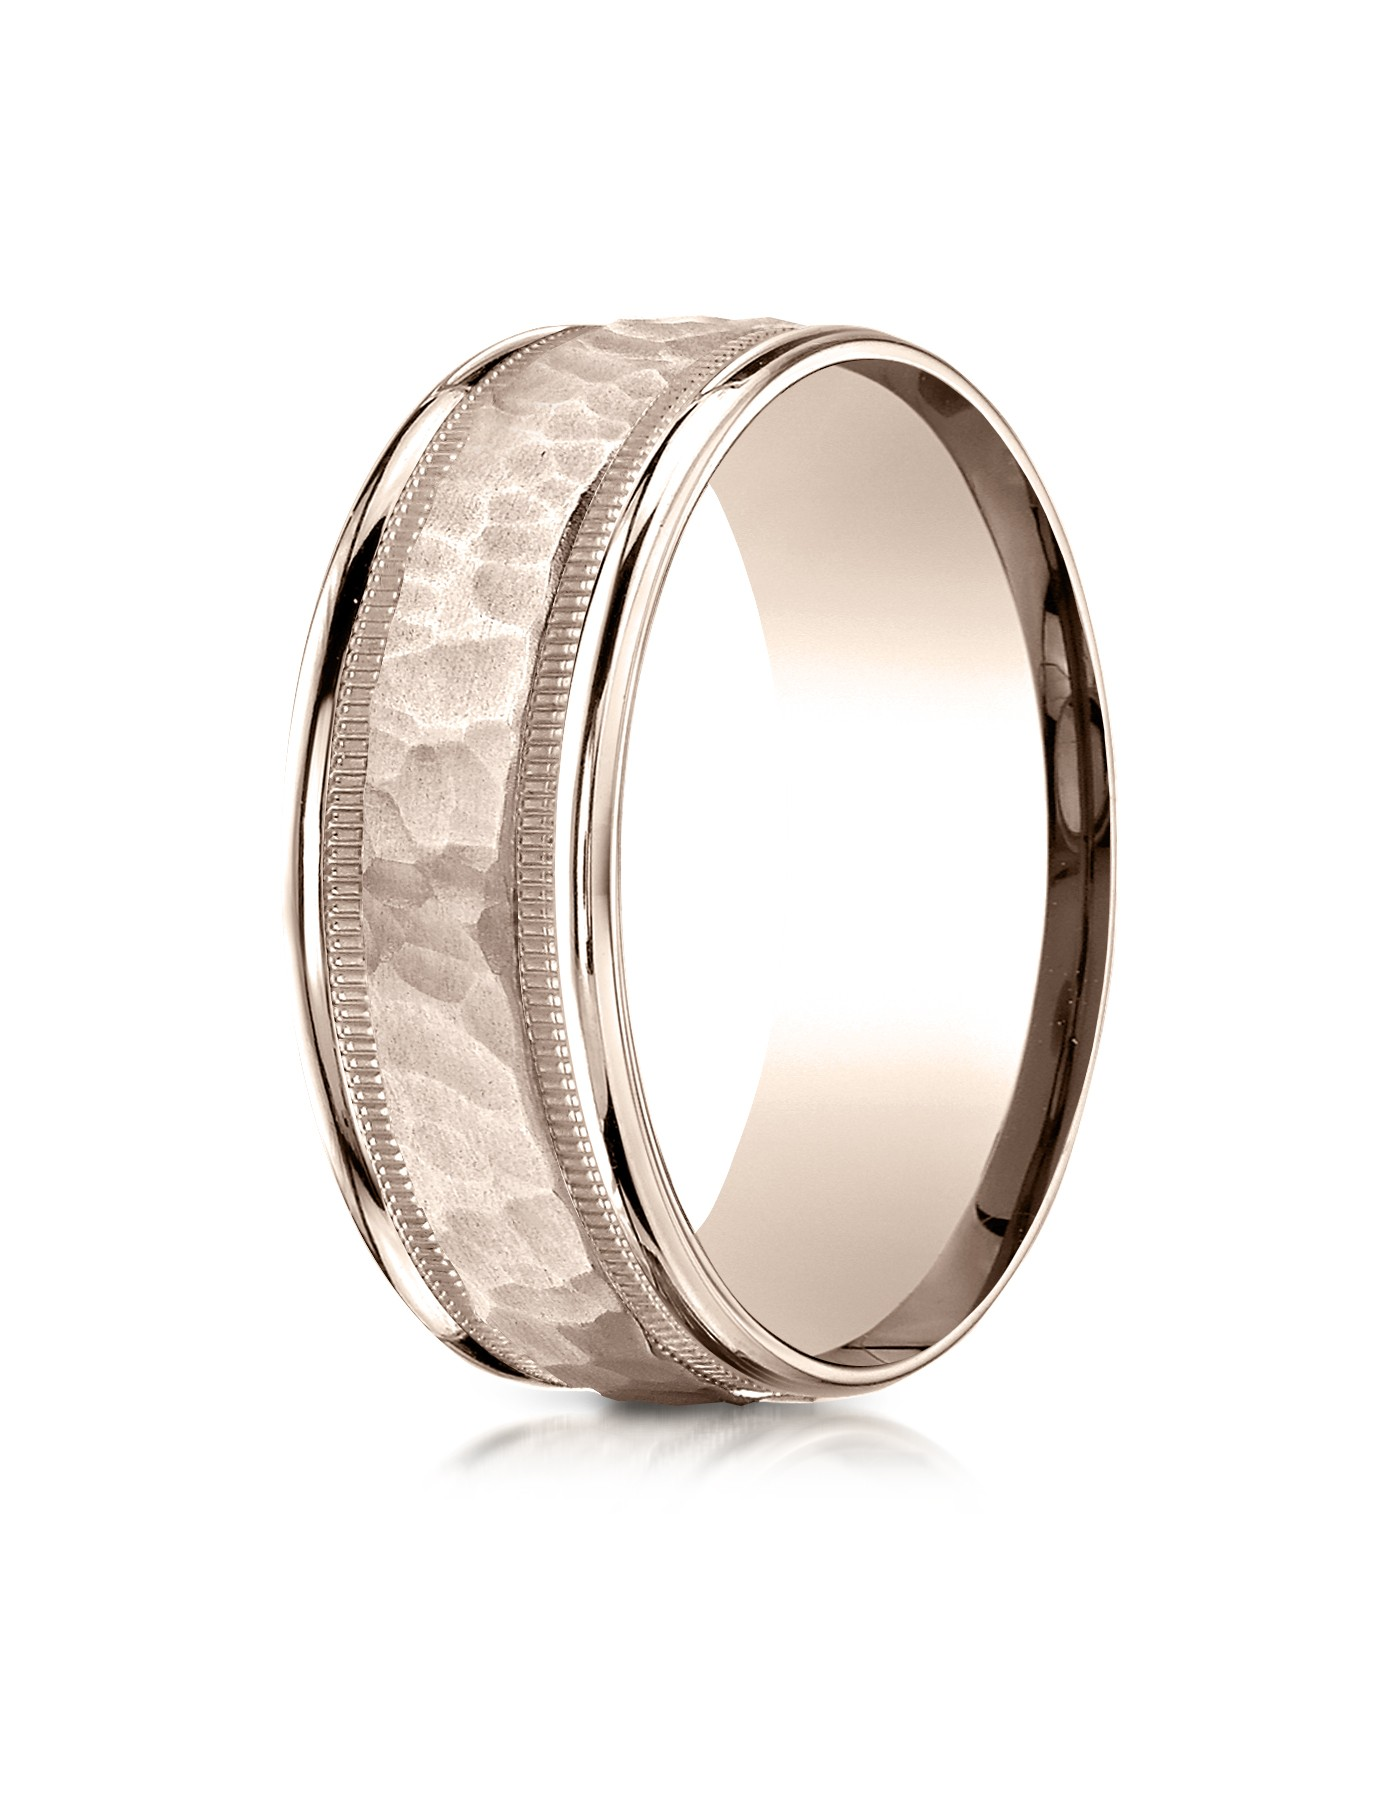 14 Karat Rose Gold 8mm Comfort-fit Hammered Center High Polish Round Edge Carved Design Band